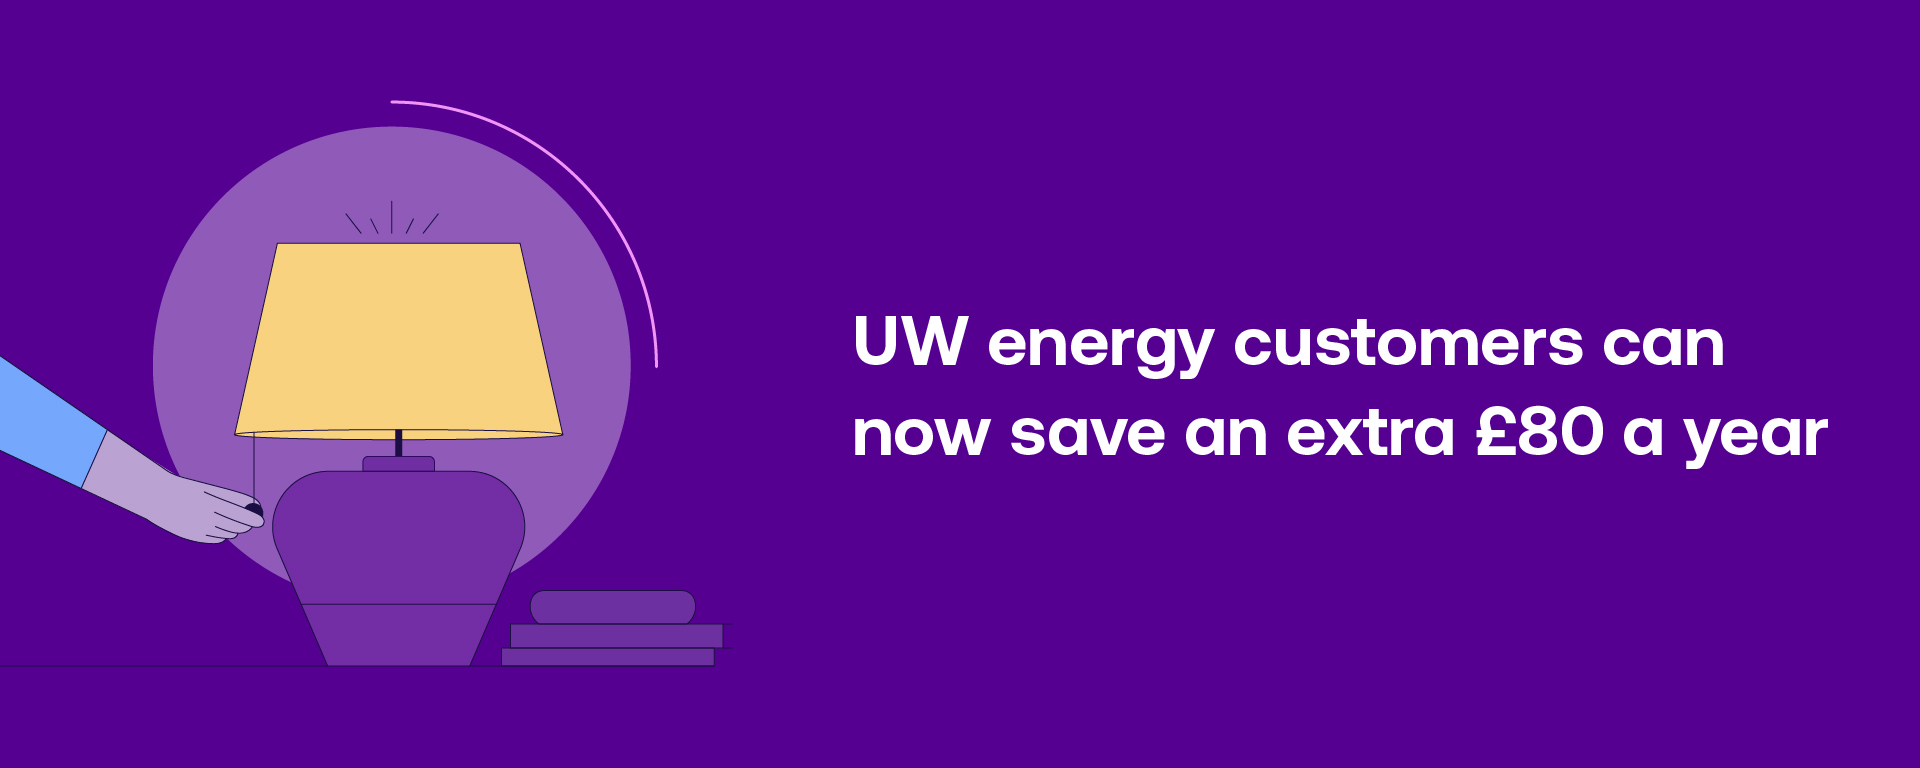 Utility Warehouse energy customers can now save an extra £80 a year